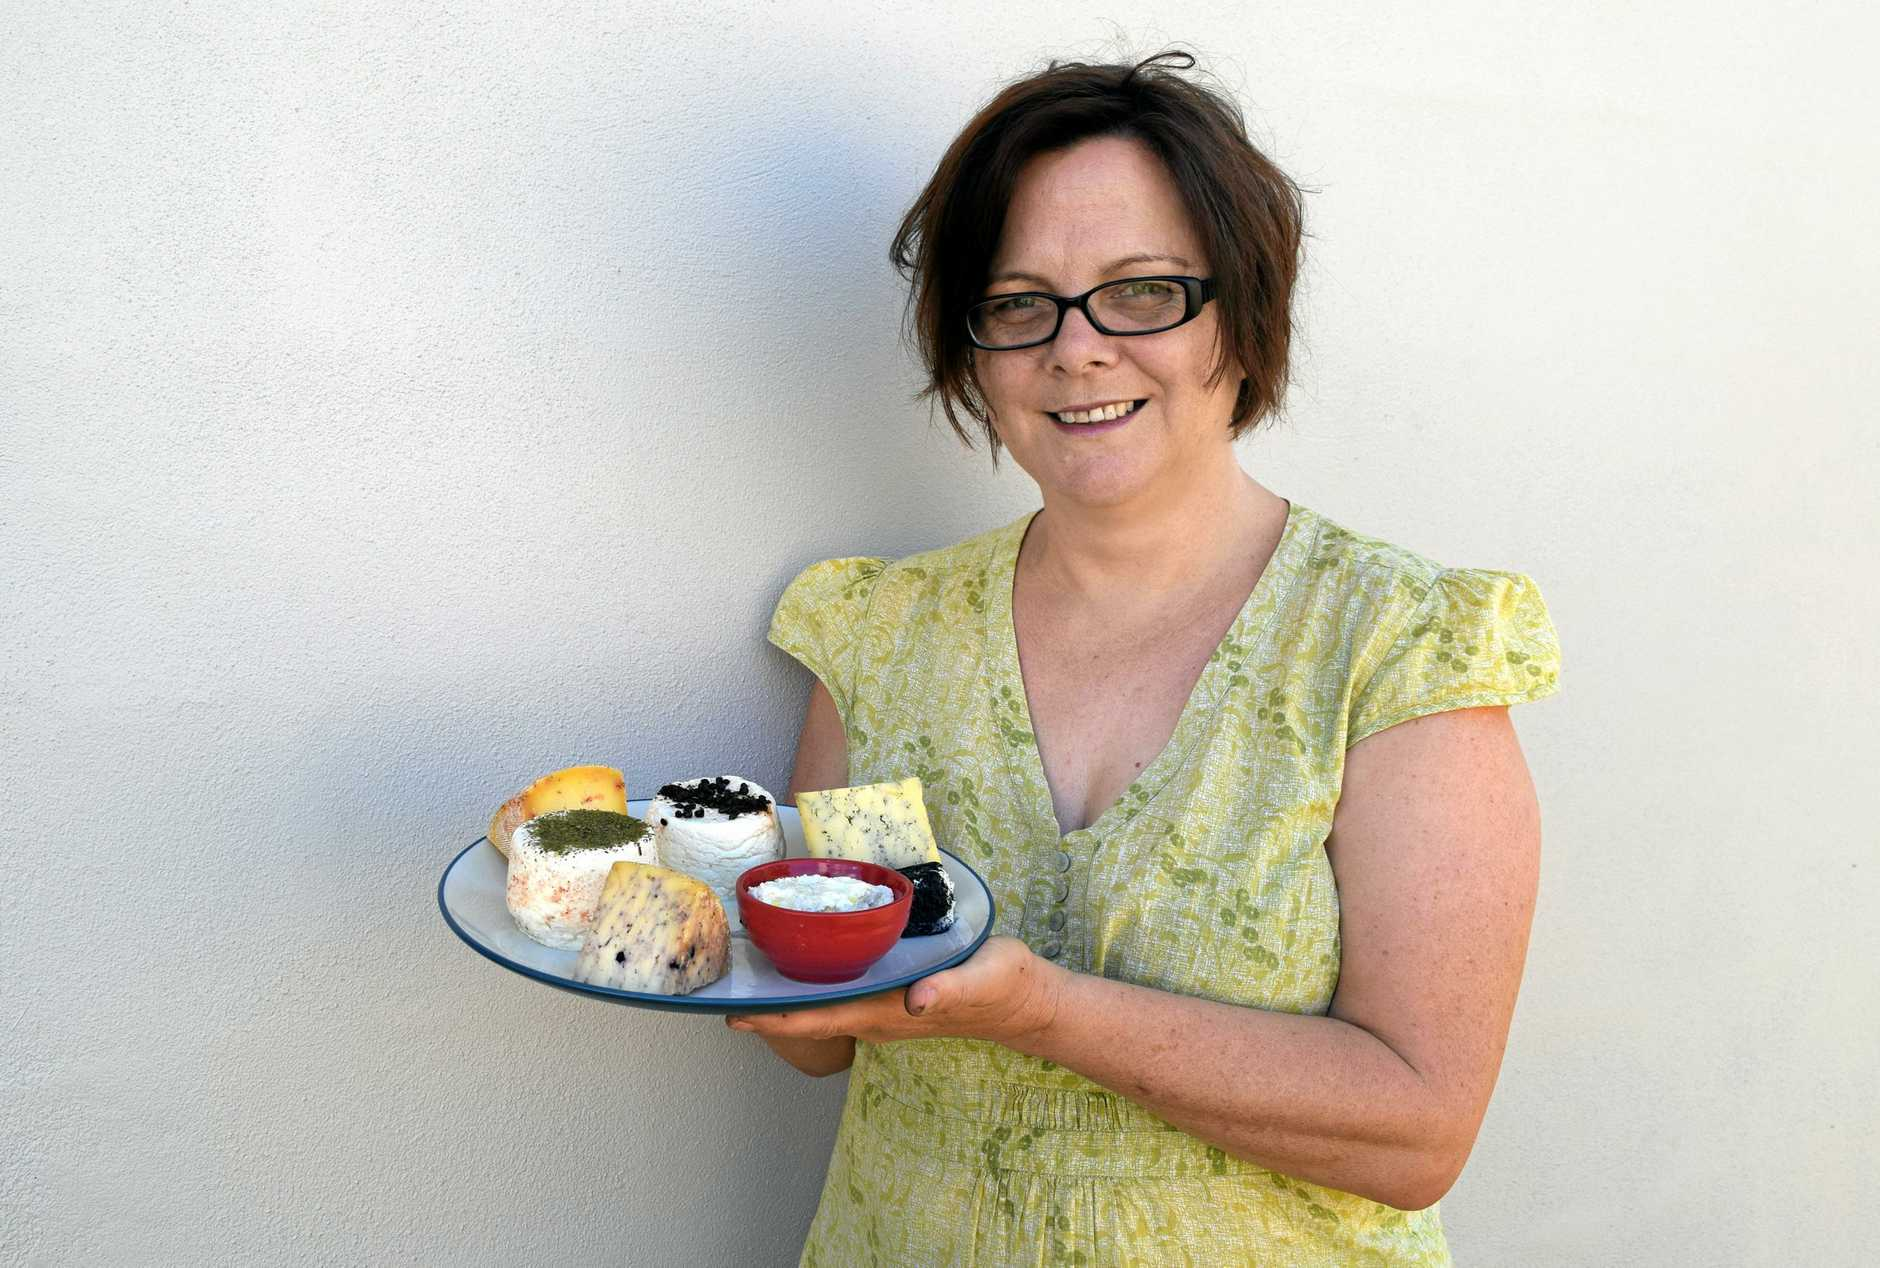 SAY CHEESE: Queensland Cheese Artisan owner Sue Sinclair with a plate of handmade cheese including Tasmanian pepperberry cheddar, ash fresh lactic cheese and wattle seeds fresh cheese.